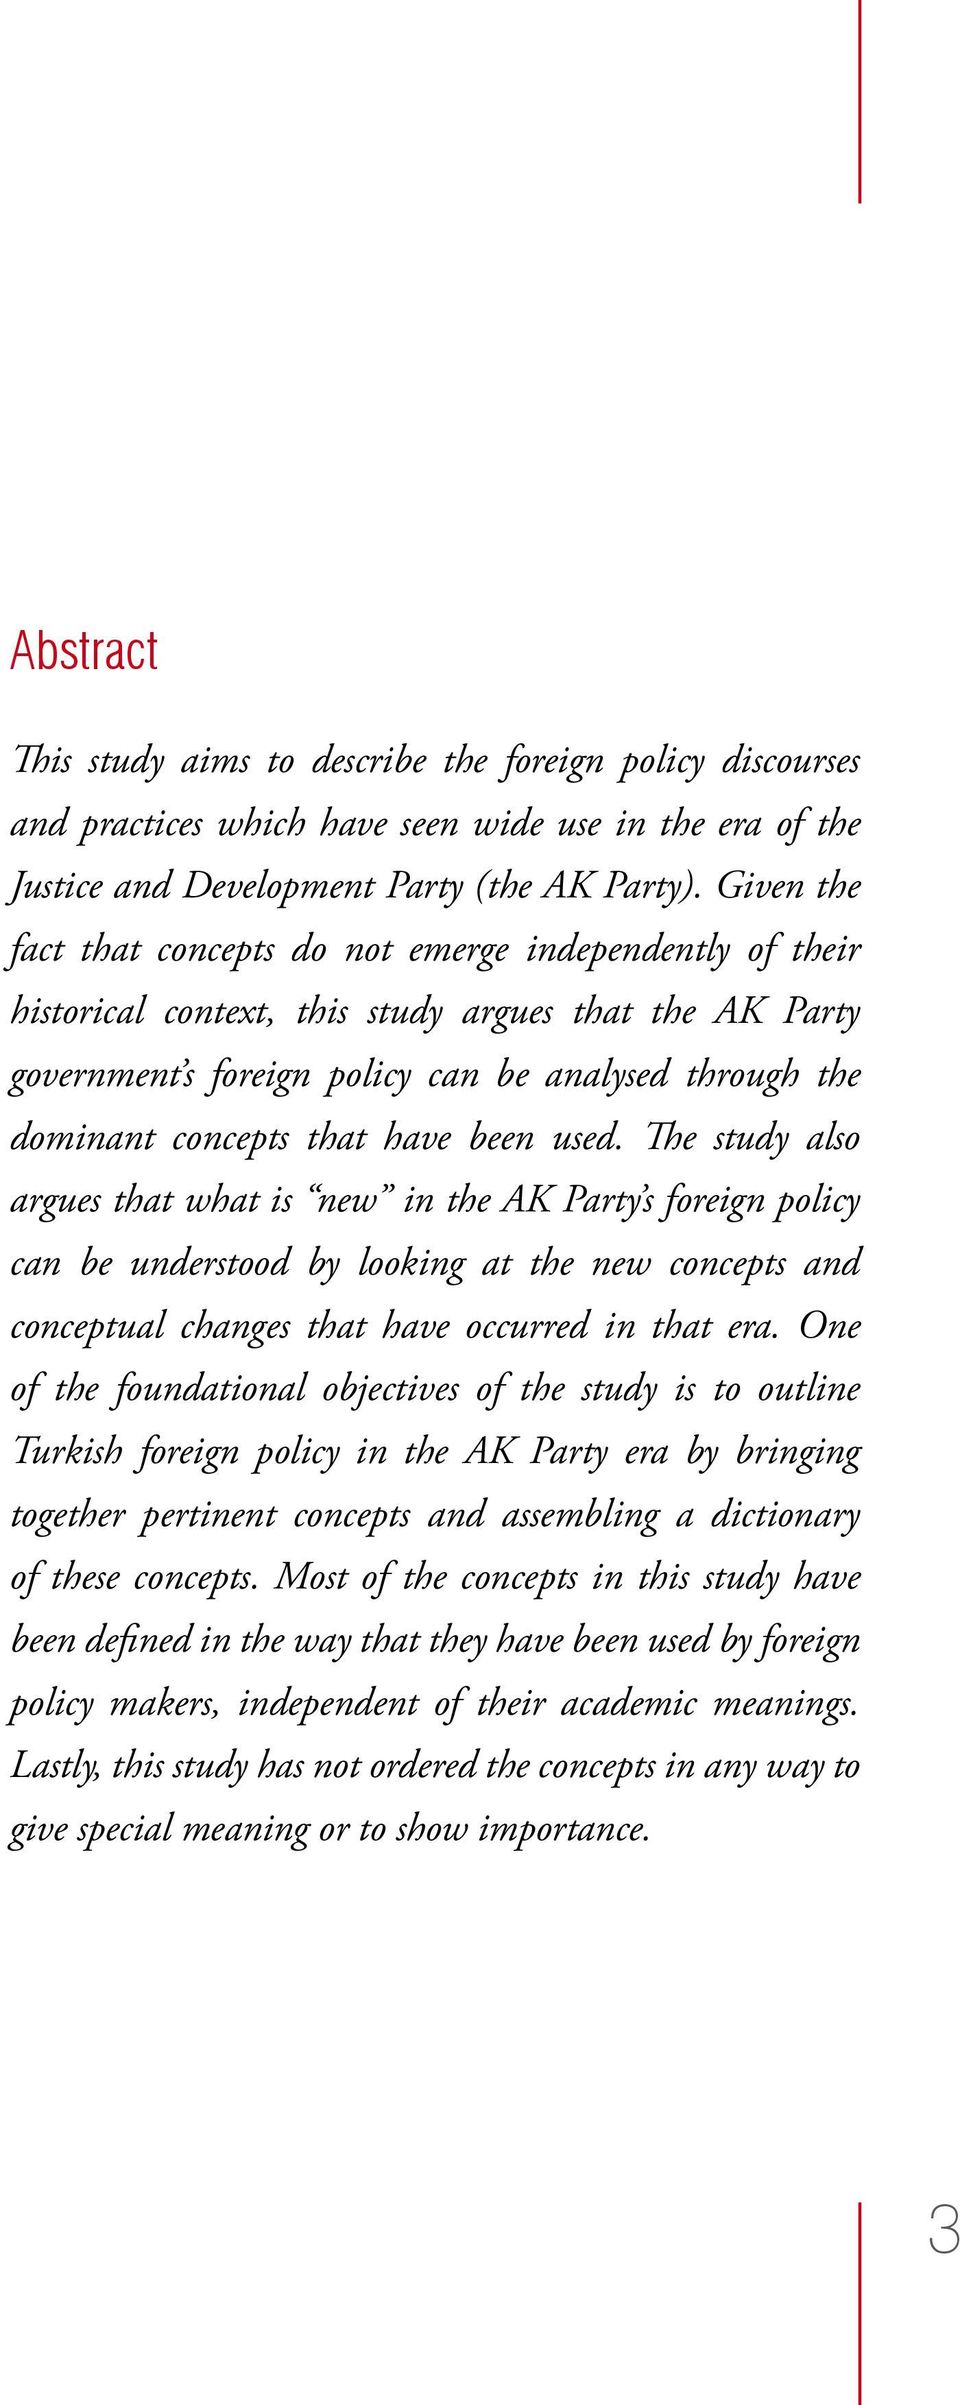 that have been used. The study also argues that what is new in the AK Party s foreign policy can be understood by looking at the new concepts and conceptual changes that have occurred in that era.